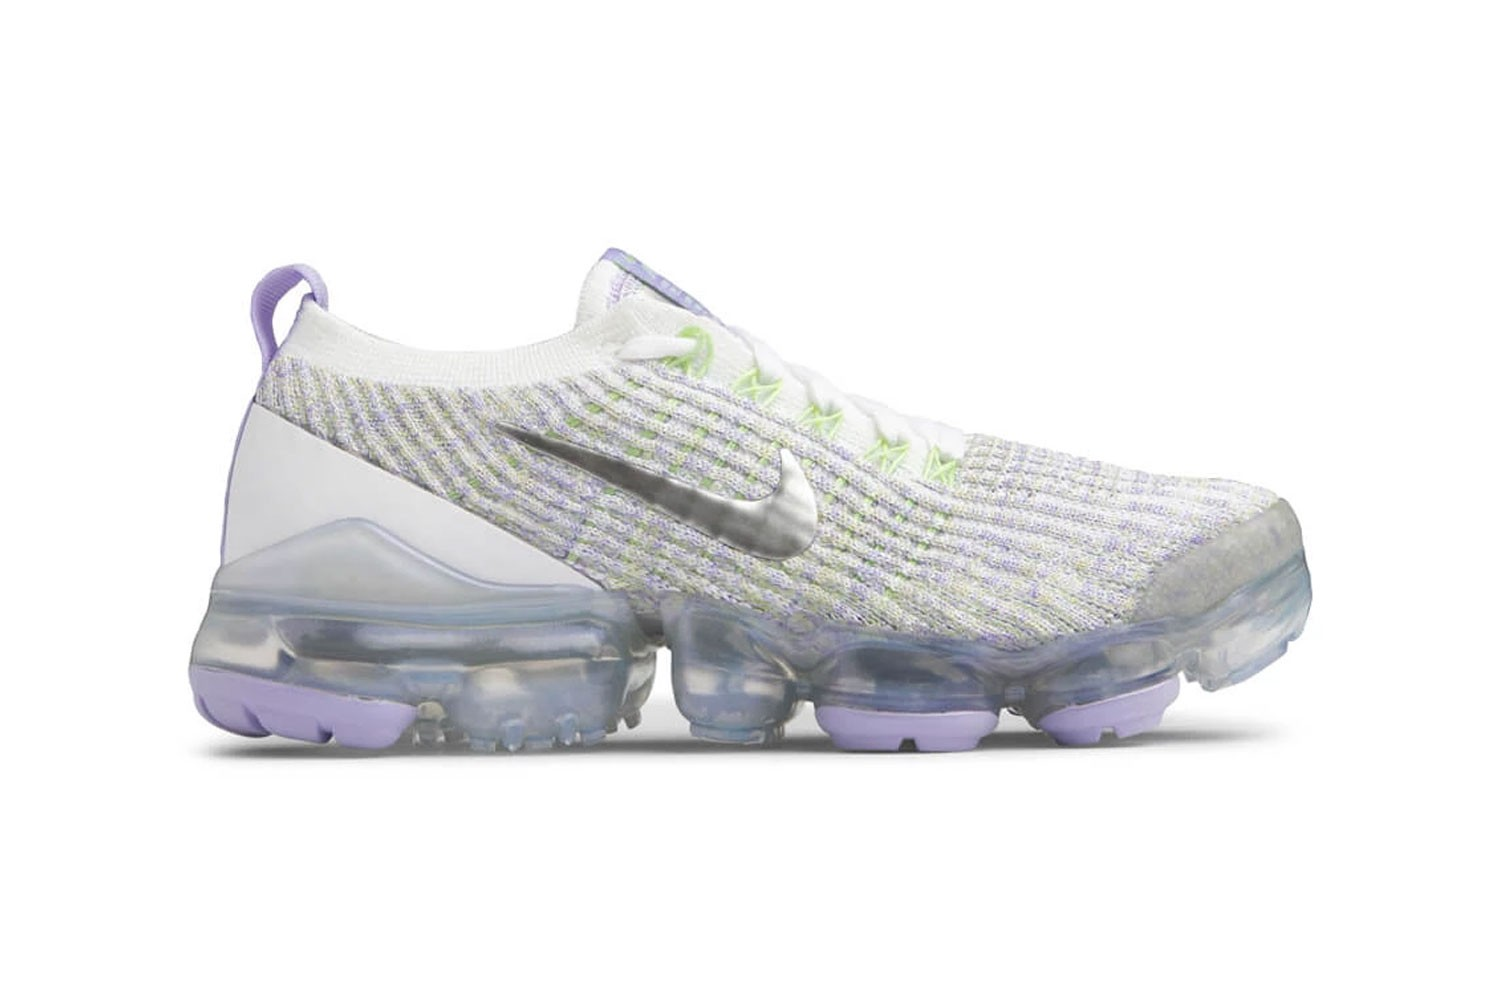 Nike Releases Air VaporMax Flyknit 3.0